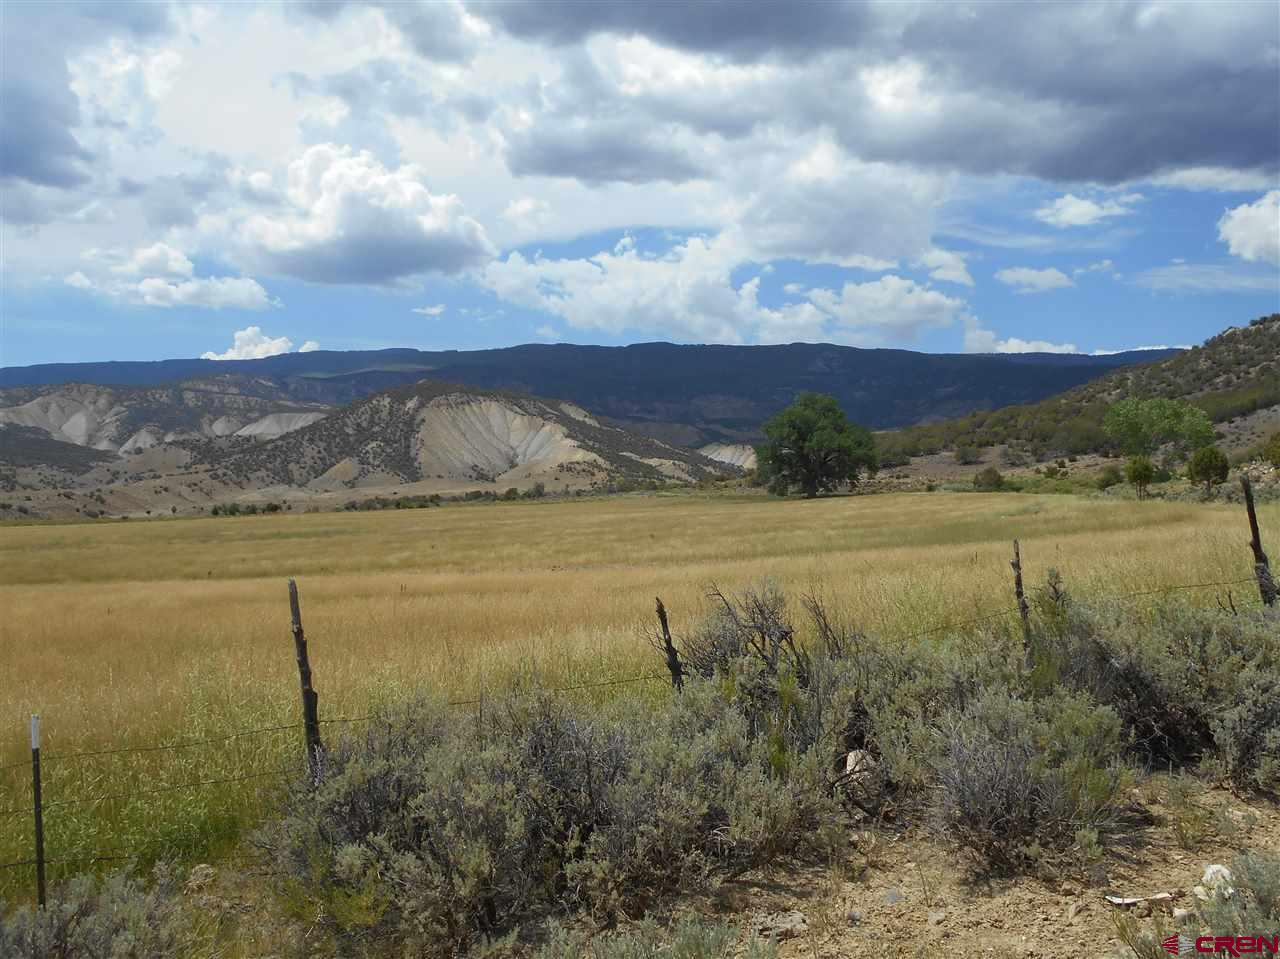 1423 acres with approximately 230 acres of irrigated pasture and hay ground. Approximately 125 acres hay-able with 70 acres under four (4) Pierce mini pivots.  Irrigation water is Leased.  Pipe corrals and high fence stack yard.  There are 3 old homesteads on the ranch. Great place for a ranch headquarters. Oak creek runs through the property.